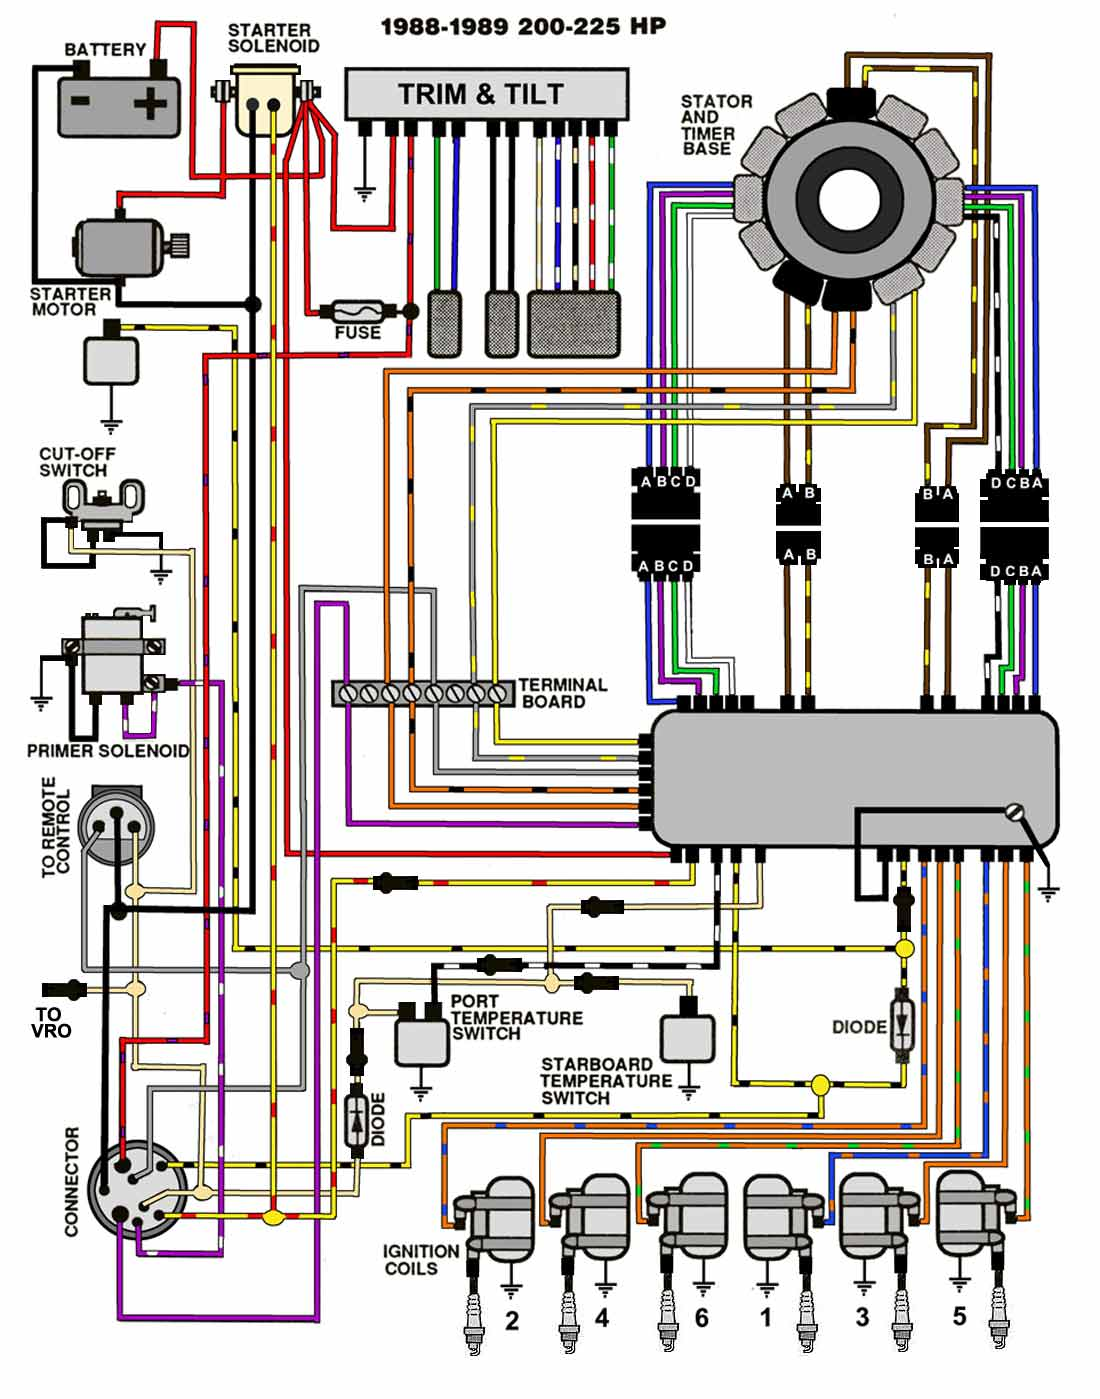 1988_89_200_225 mastertech marine evinrude johnson outboard wiring diagrams johnson outboard wiring schematic at crackthecode.co